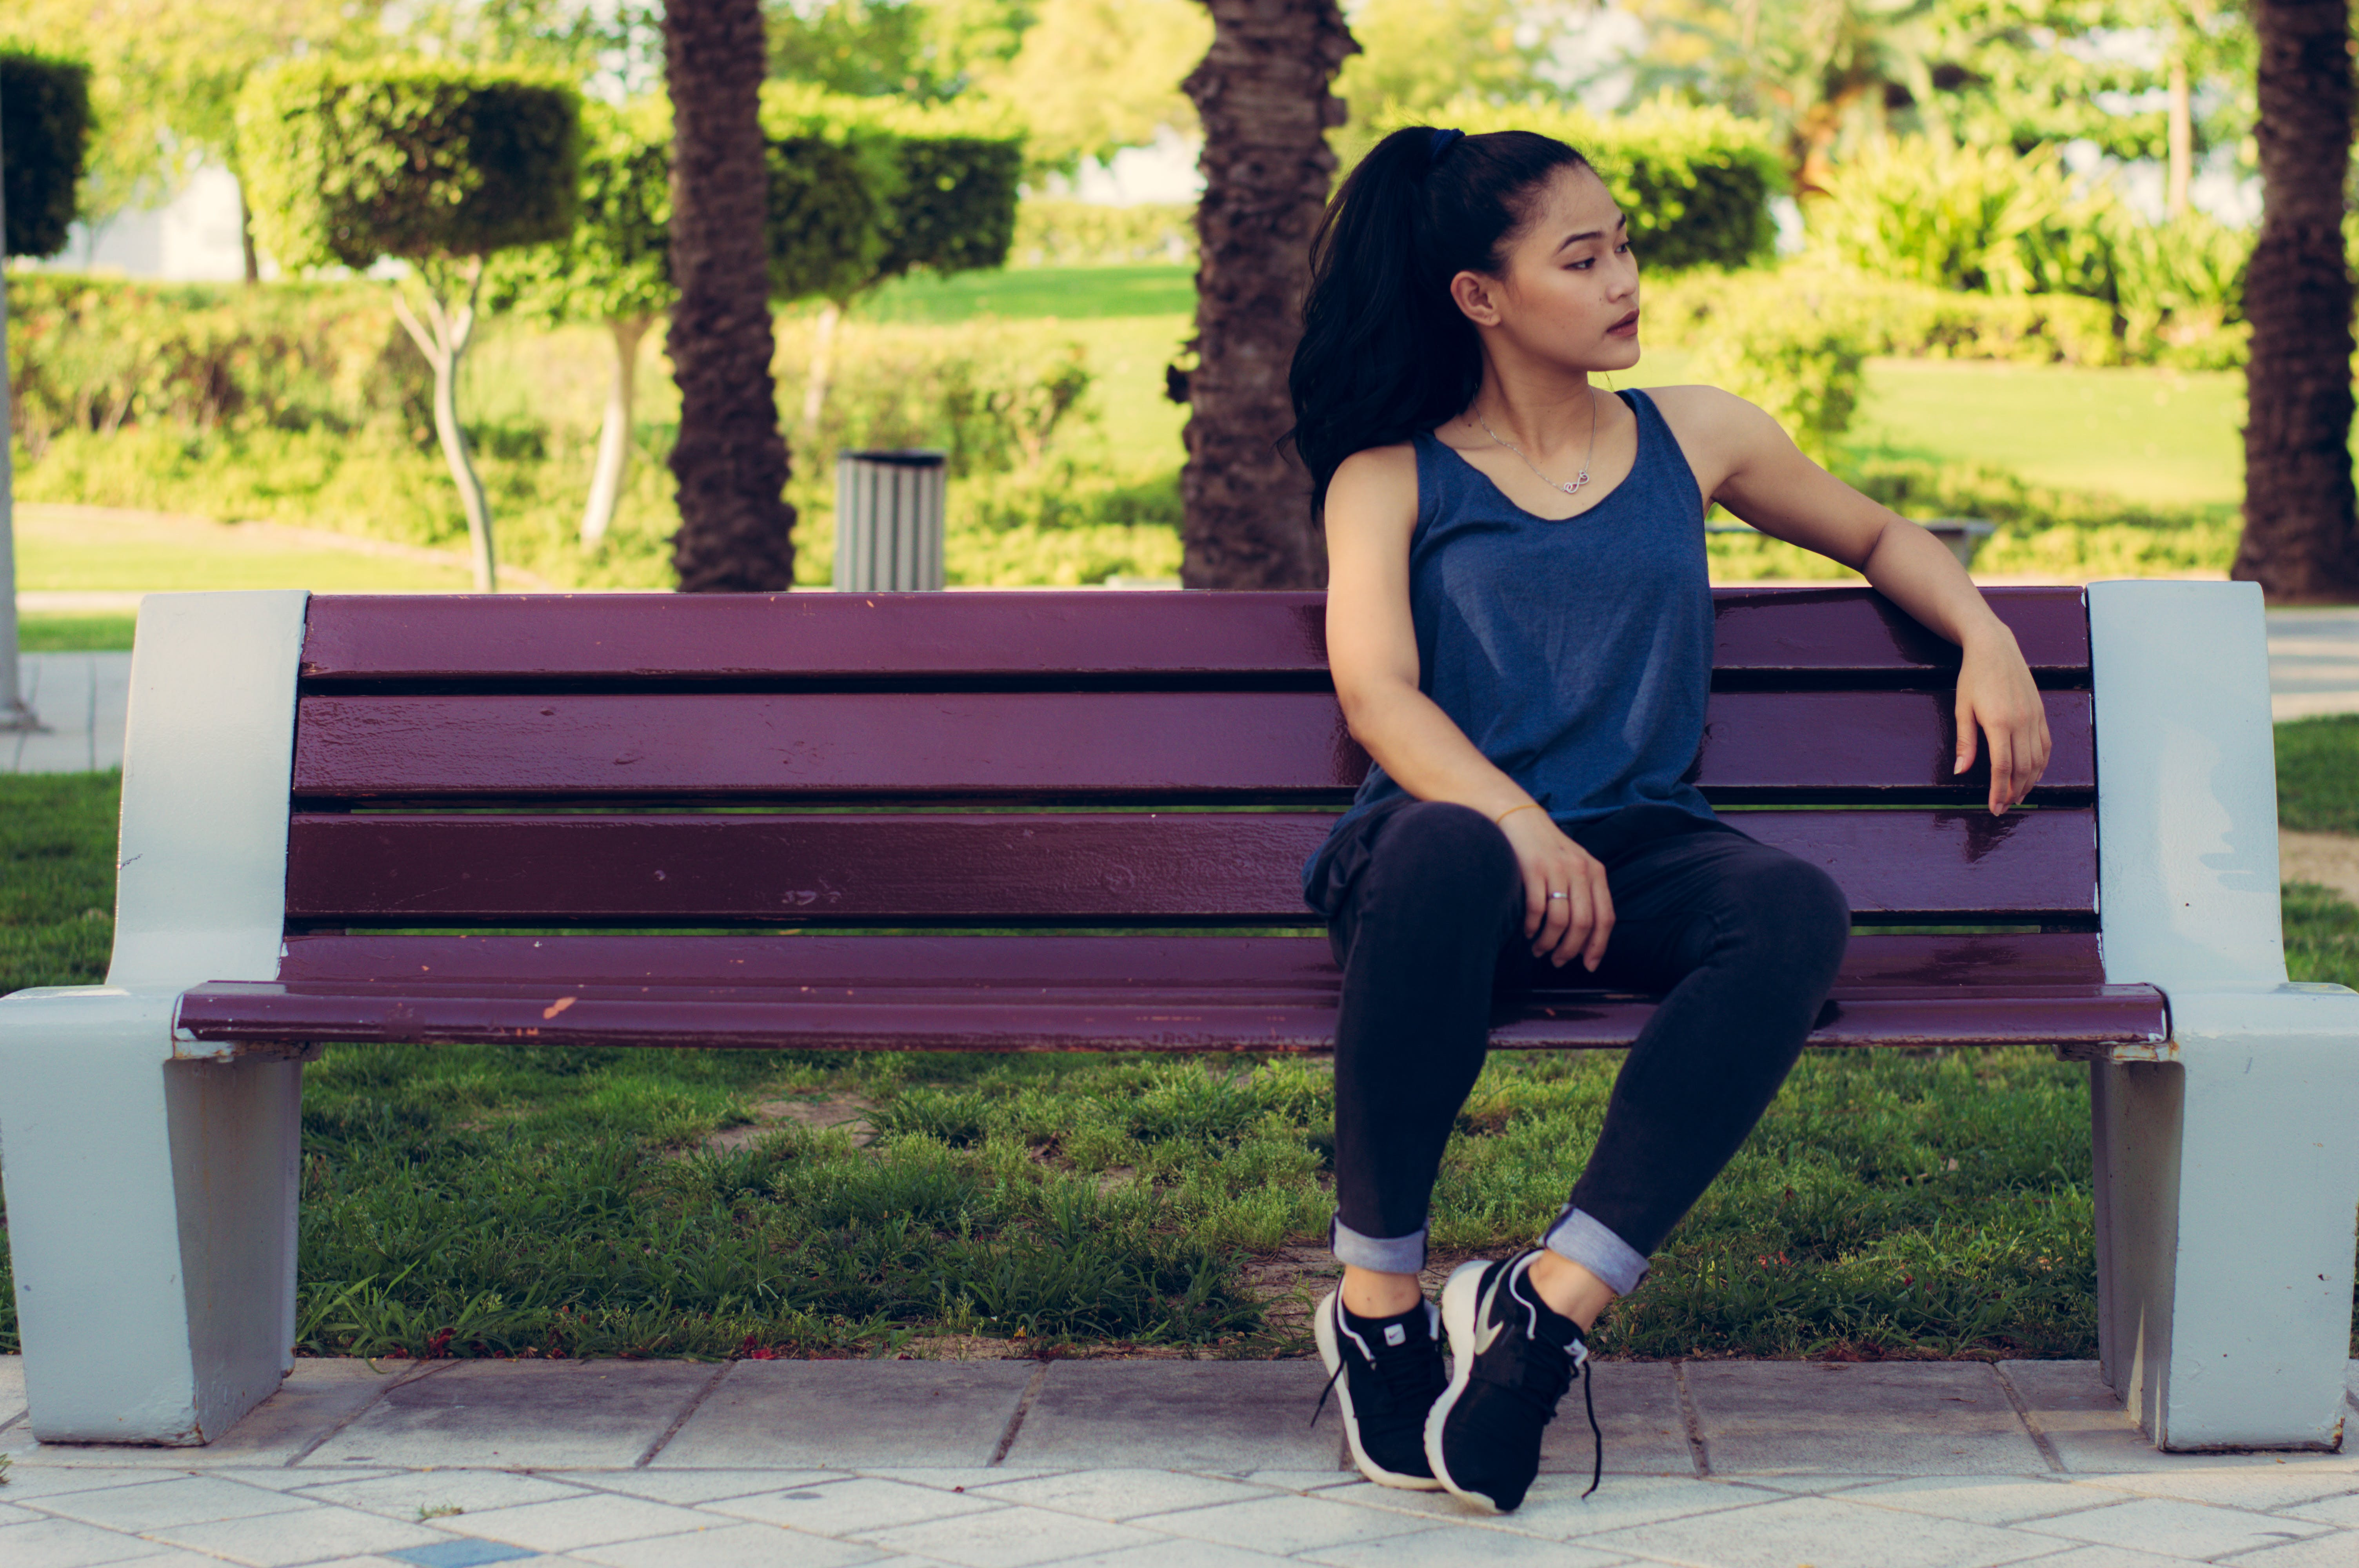 Woman Sitting on Purple Bench